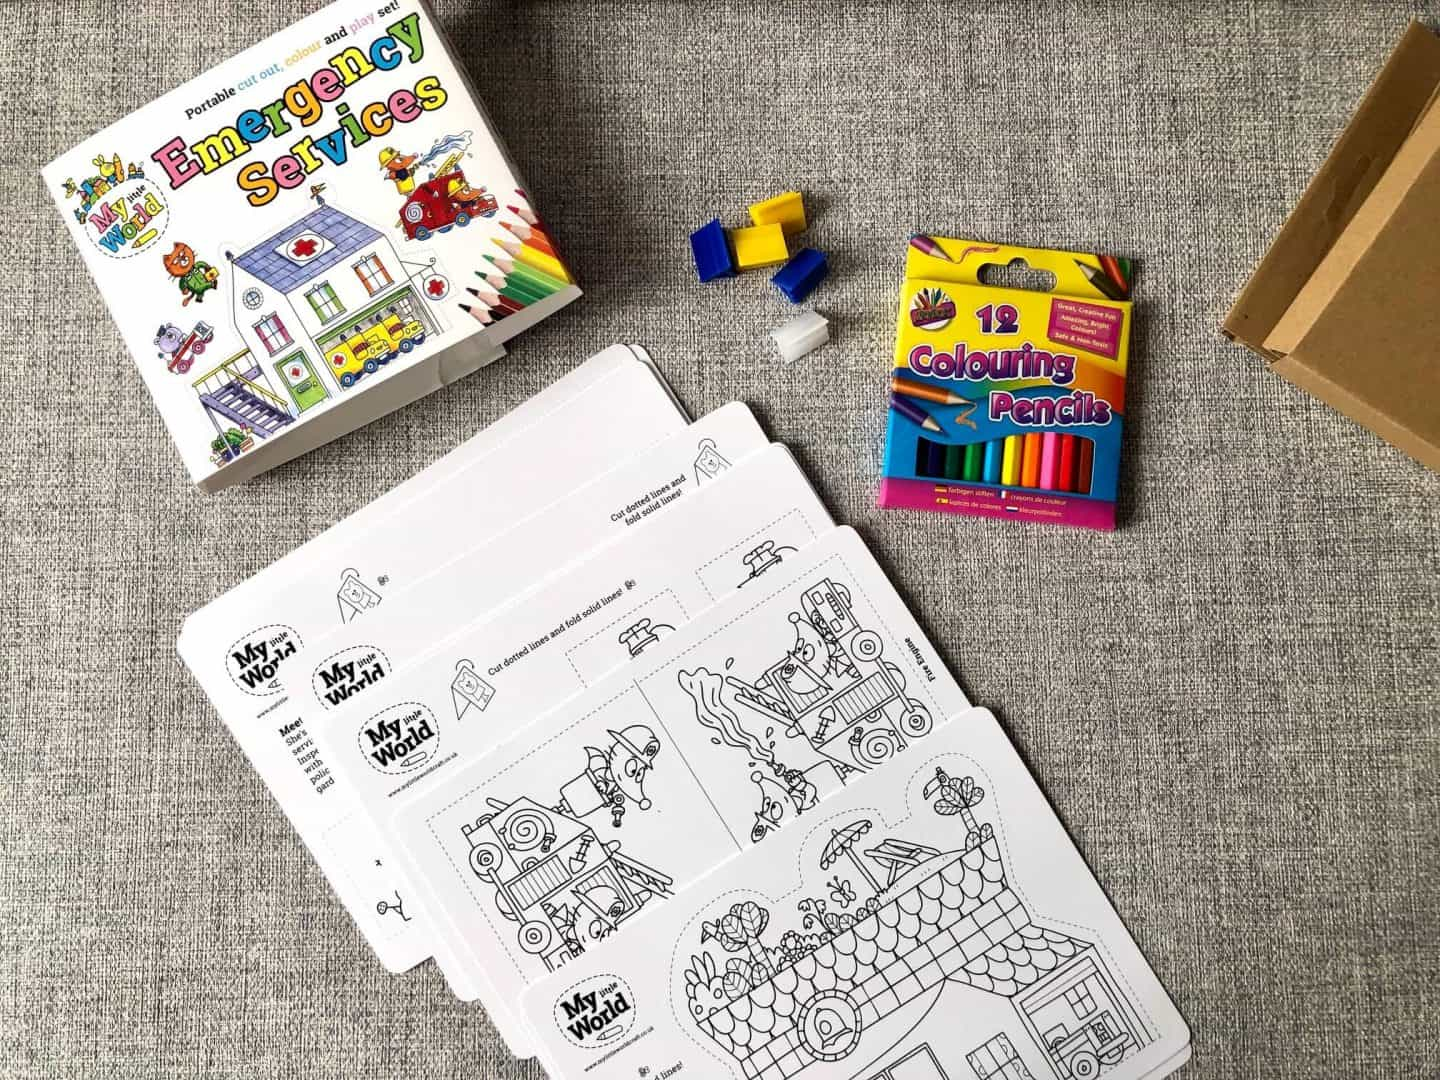 What are My Little World Activity Packs?